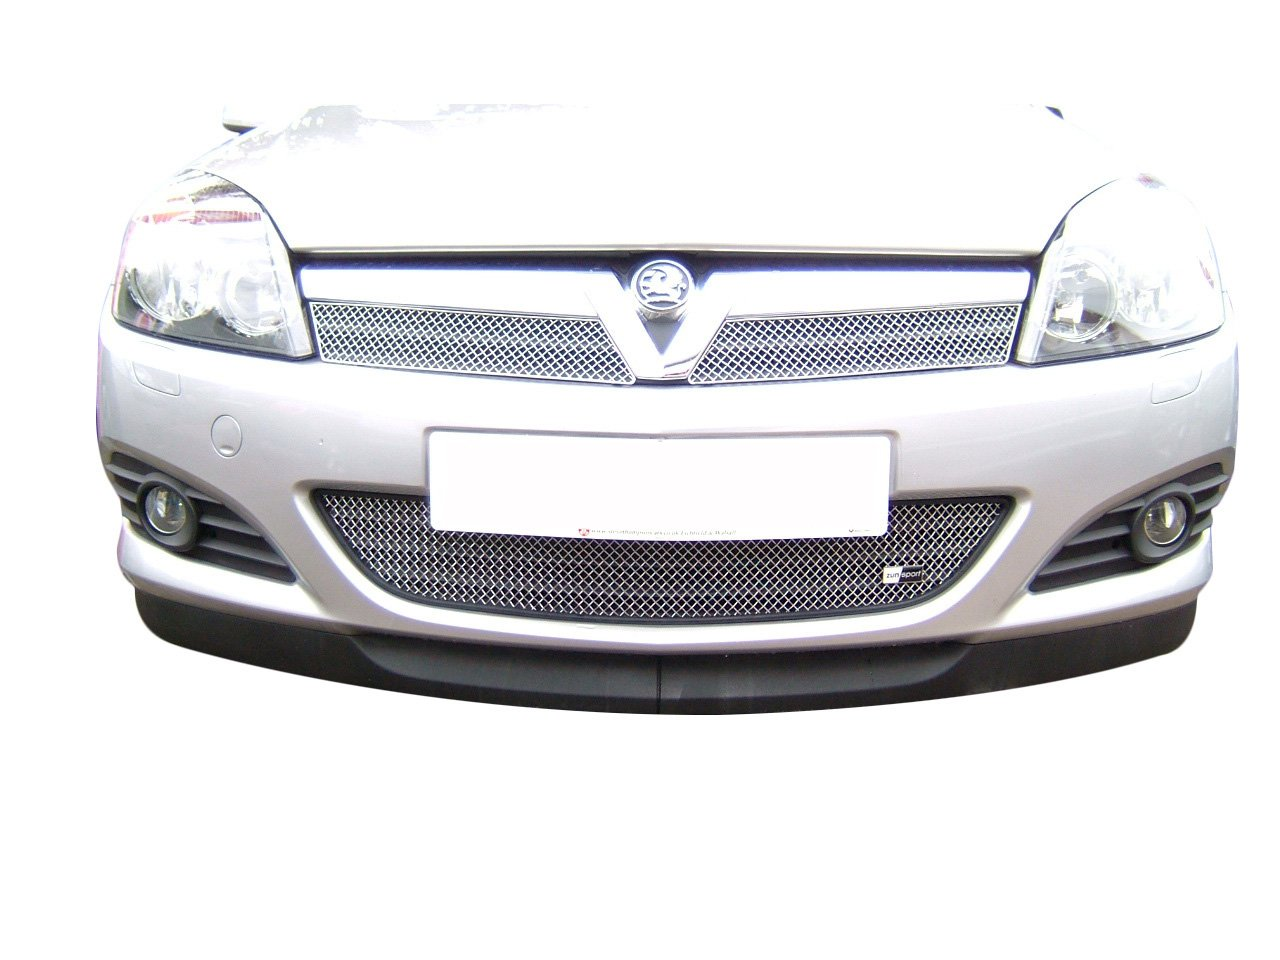 2005 onwards 3 door SXi diesel model Silver finish Zunsport Astra Front Grille Set